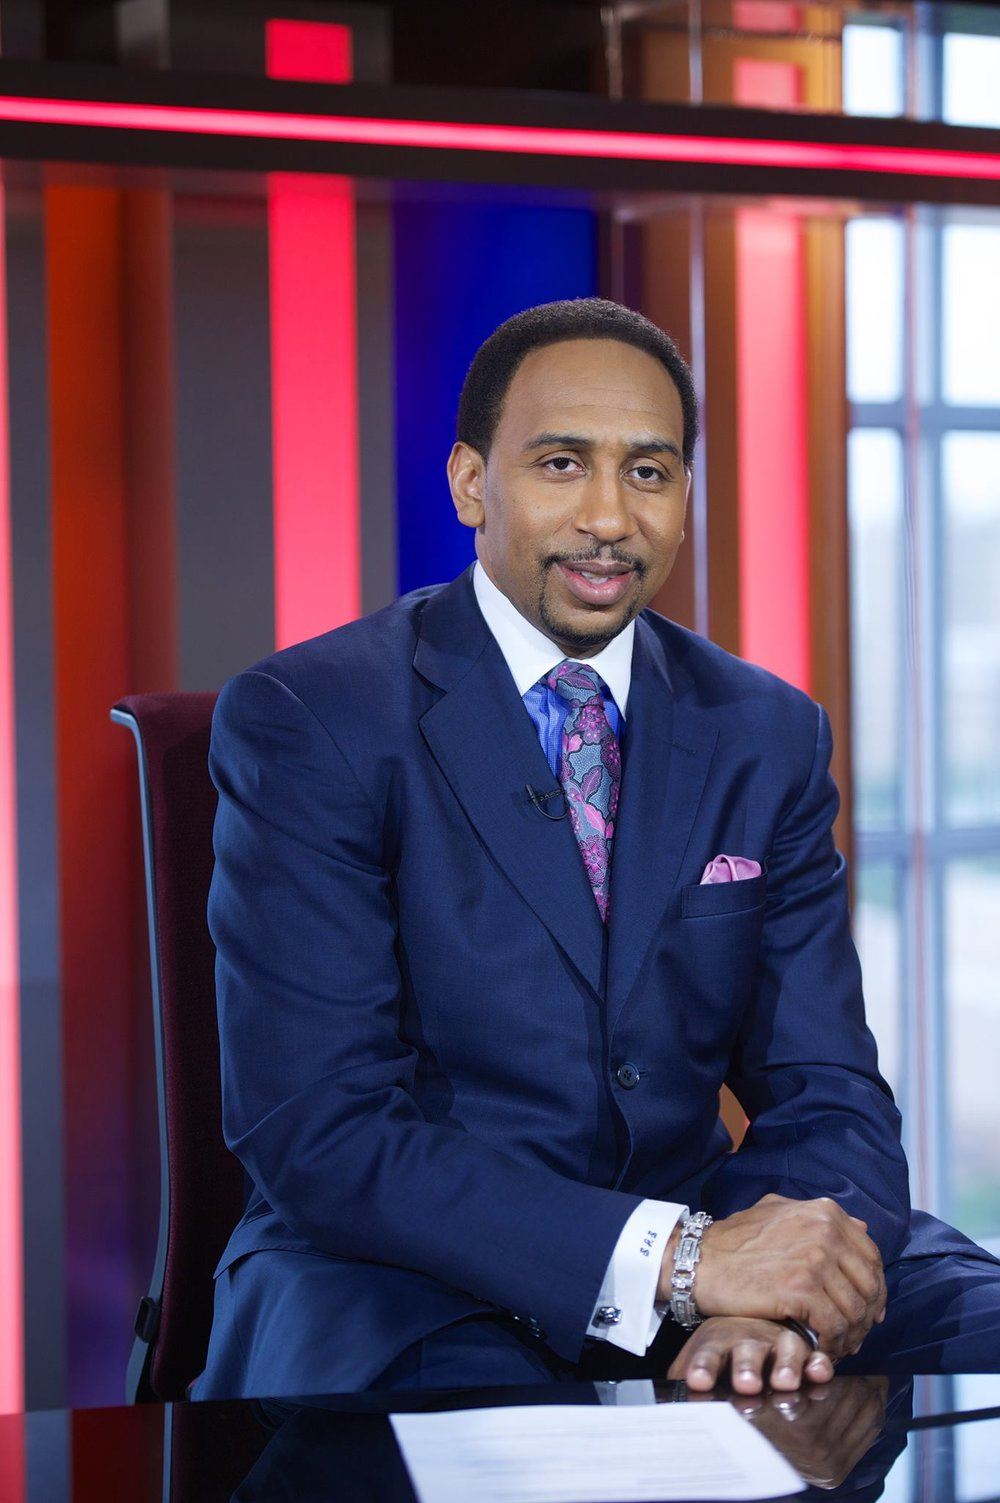 ESPN TV personality Stephen A. Smith brings jokes and advice to students for Spring Weekend at the Jorgensen Center for the Performing Arts on Friday night. (Stephen A. Smith Facebook page)